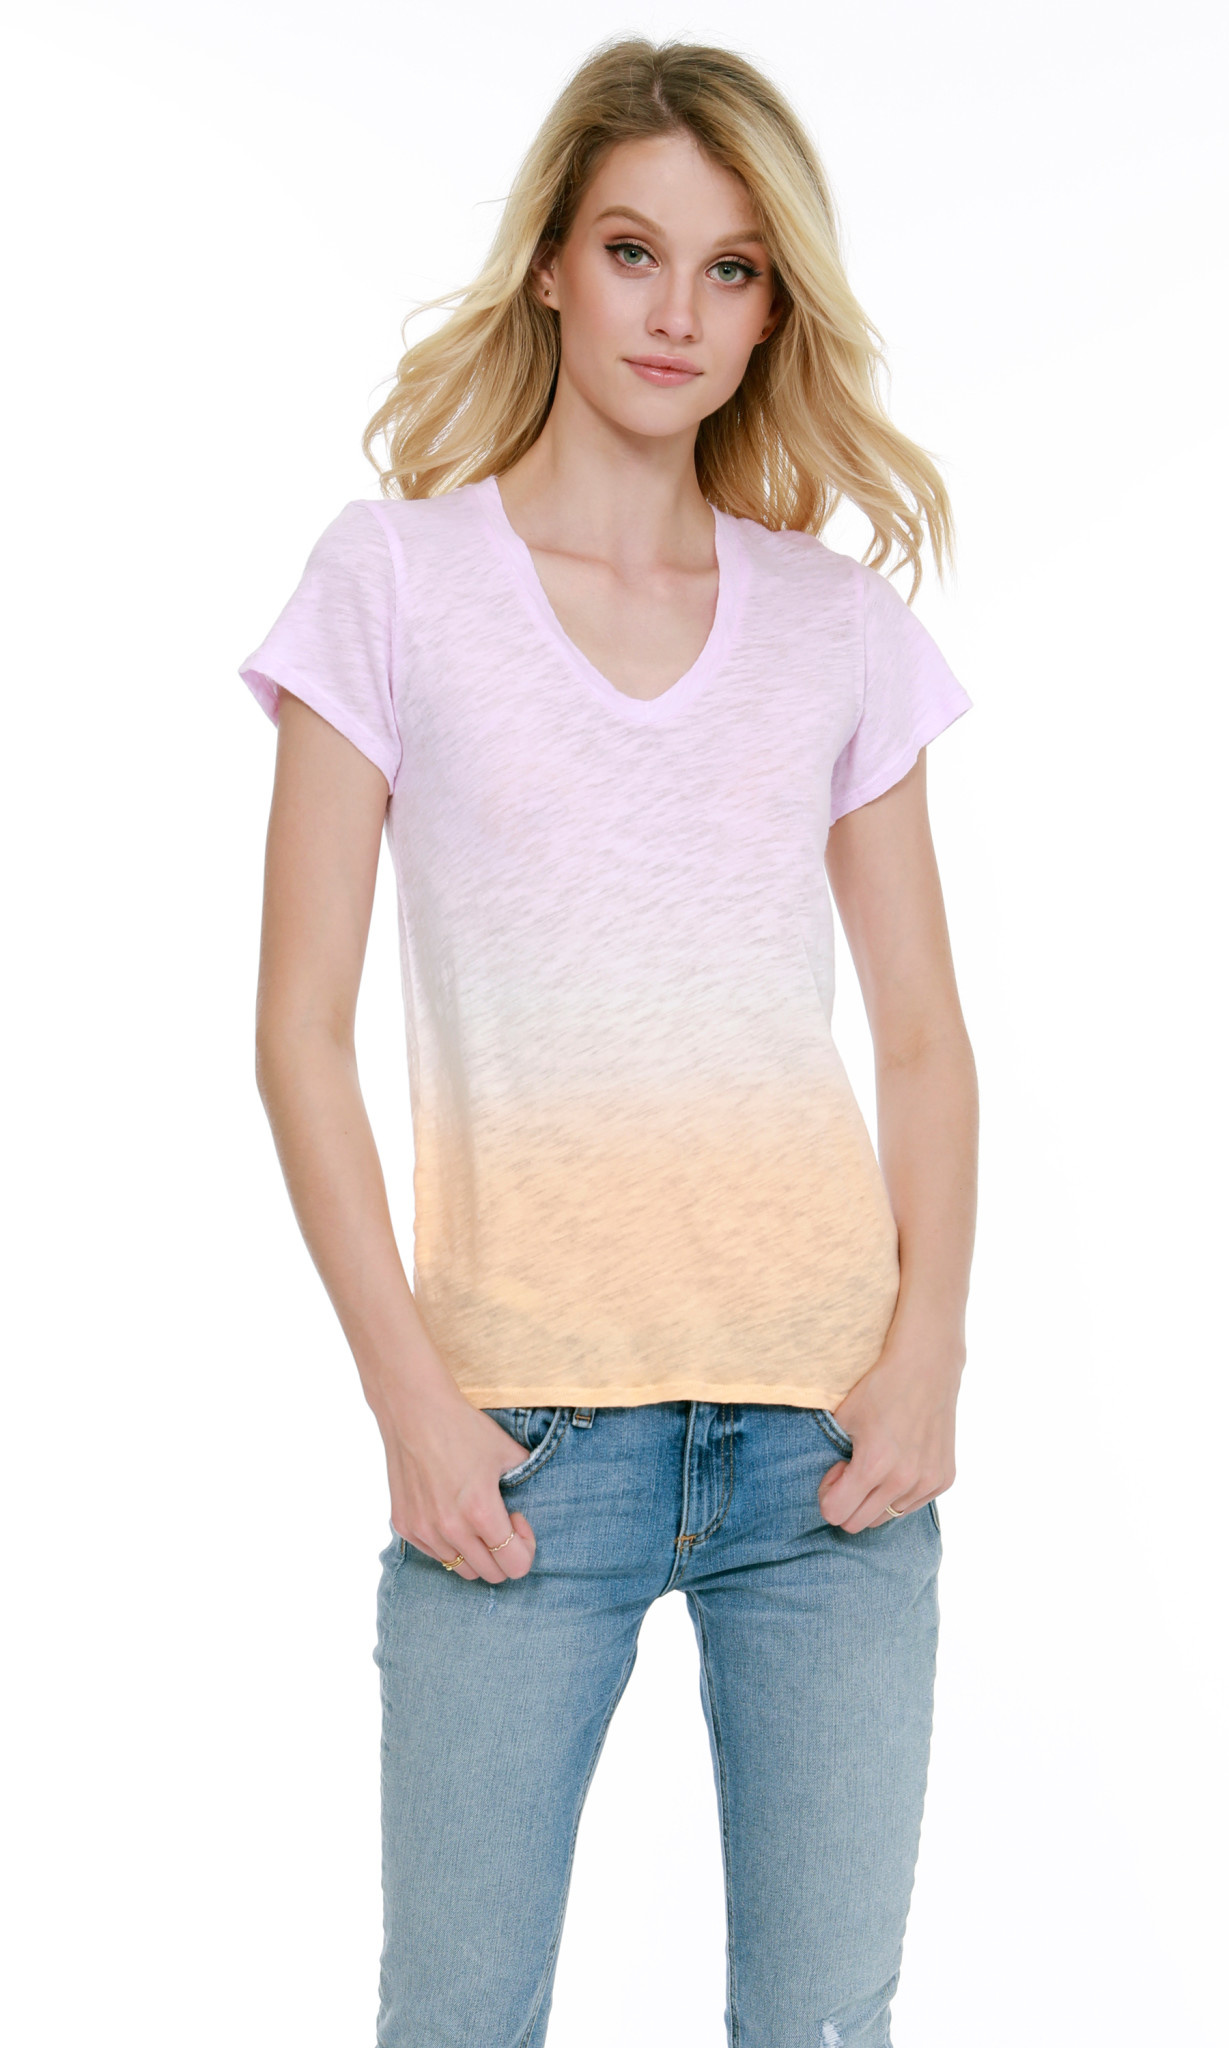 Ombre V- Neck Tee Shirt